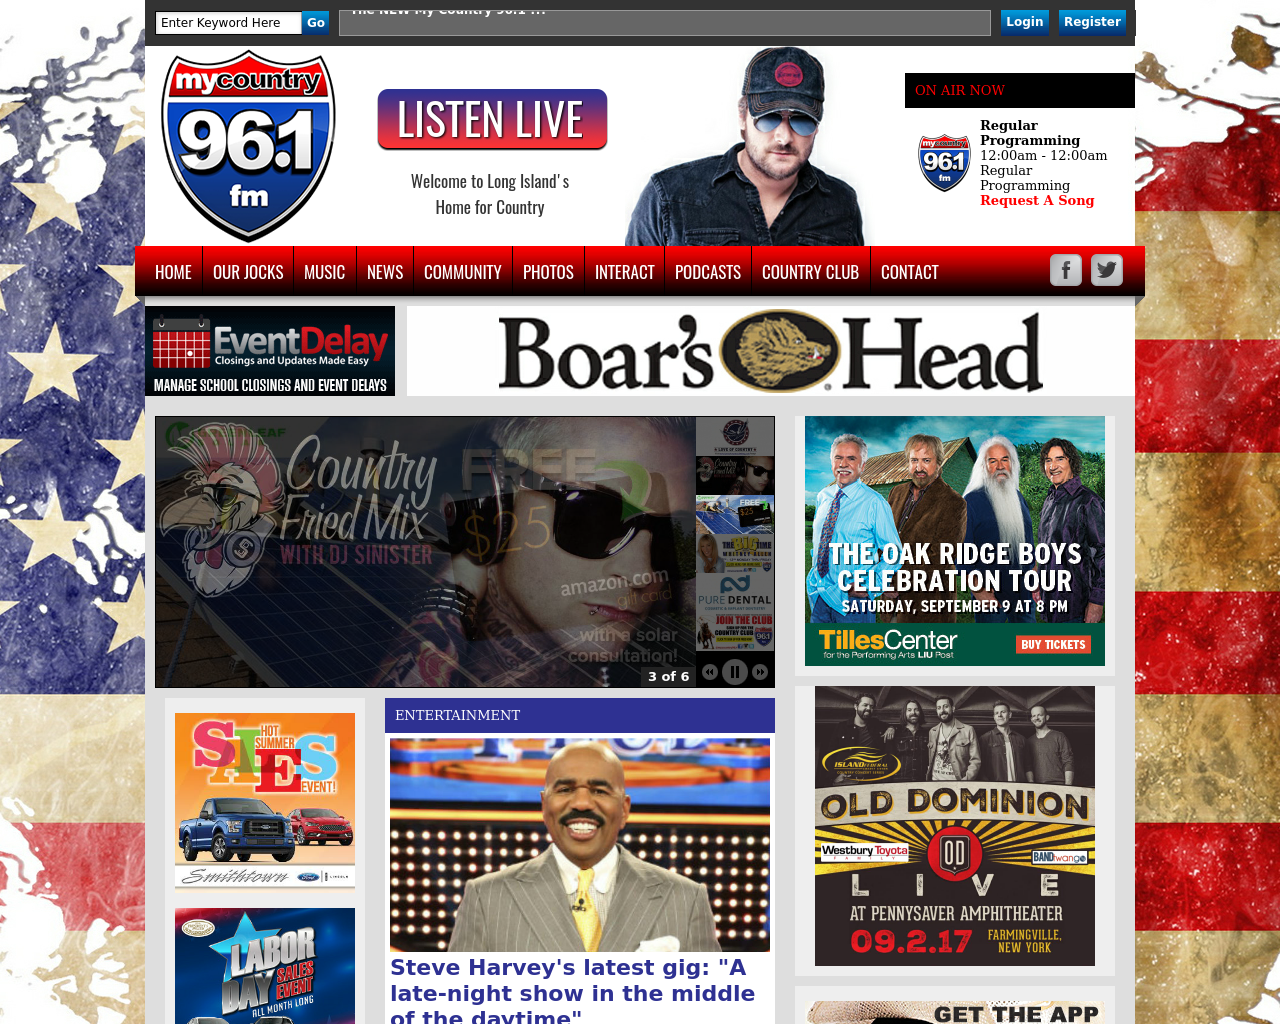 My-Country-96.1-Fm-Advertising-Reviews-Pricing